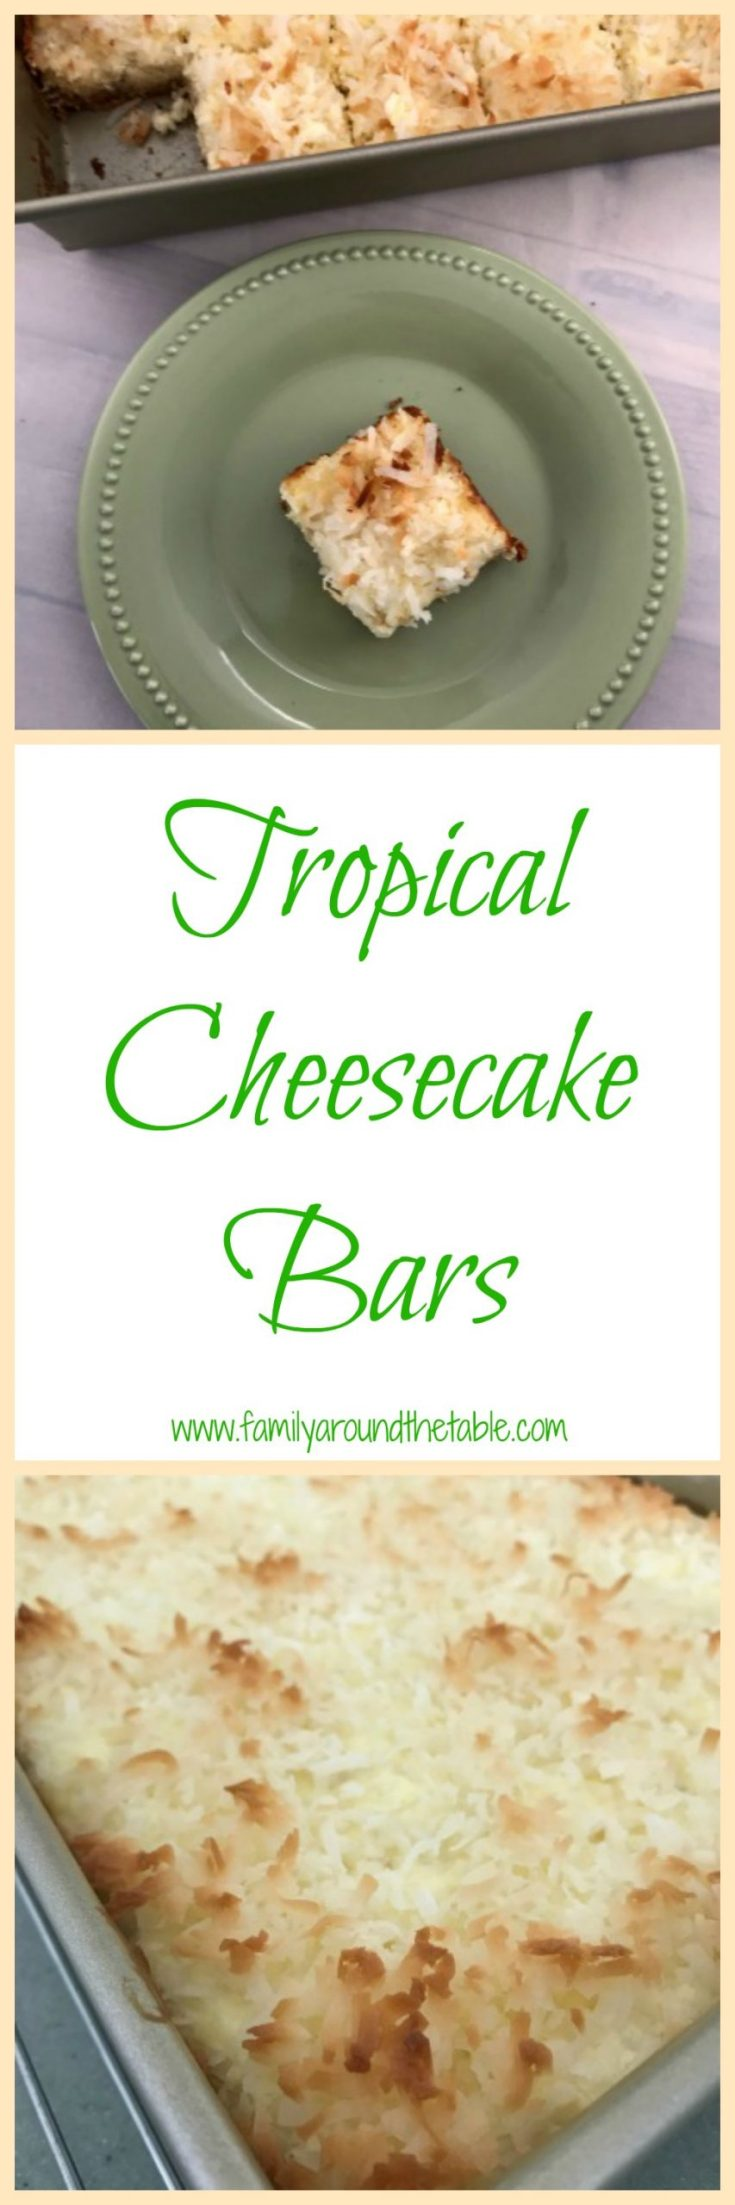 Serve tropical cheesecake bars all summer long. They travel well and will disappear in no time.